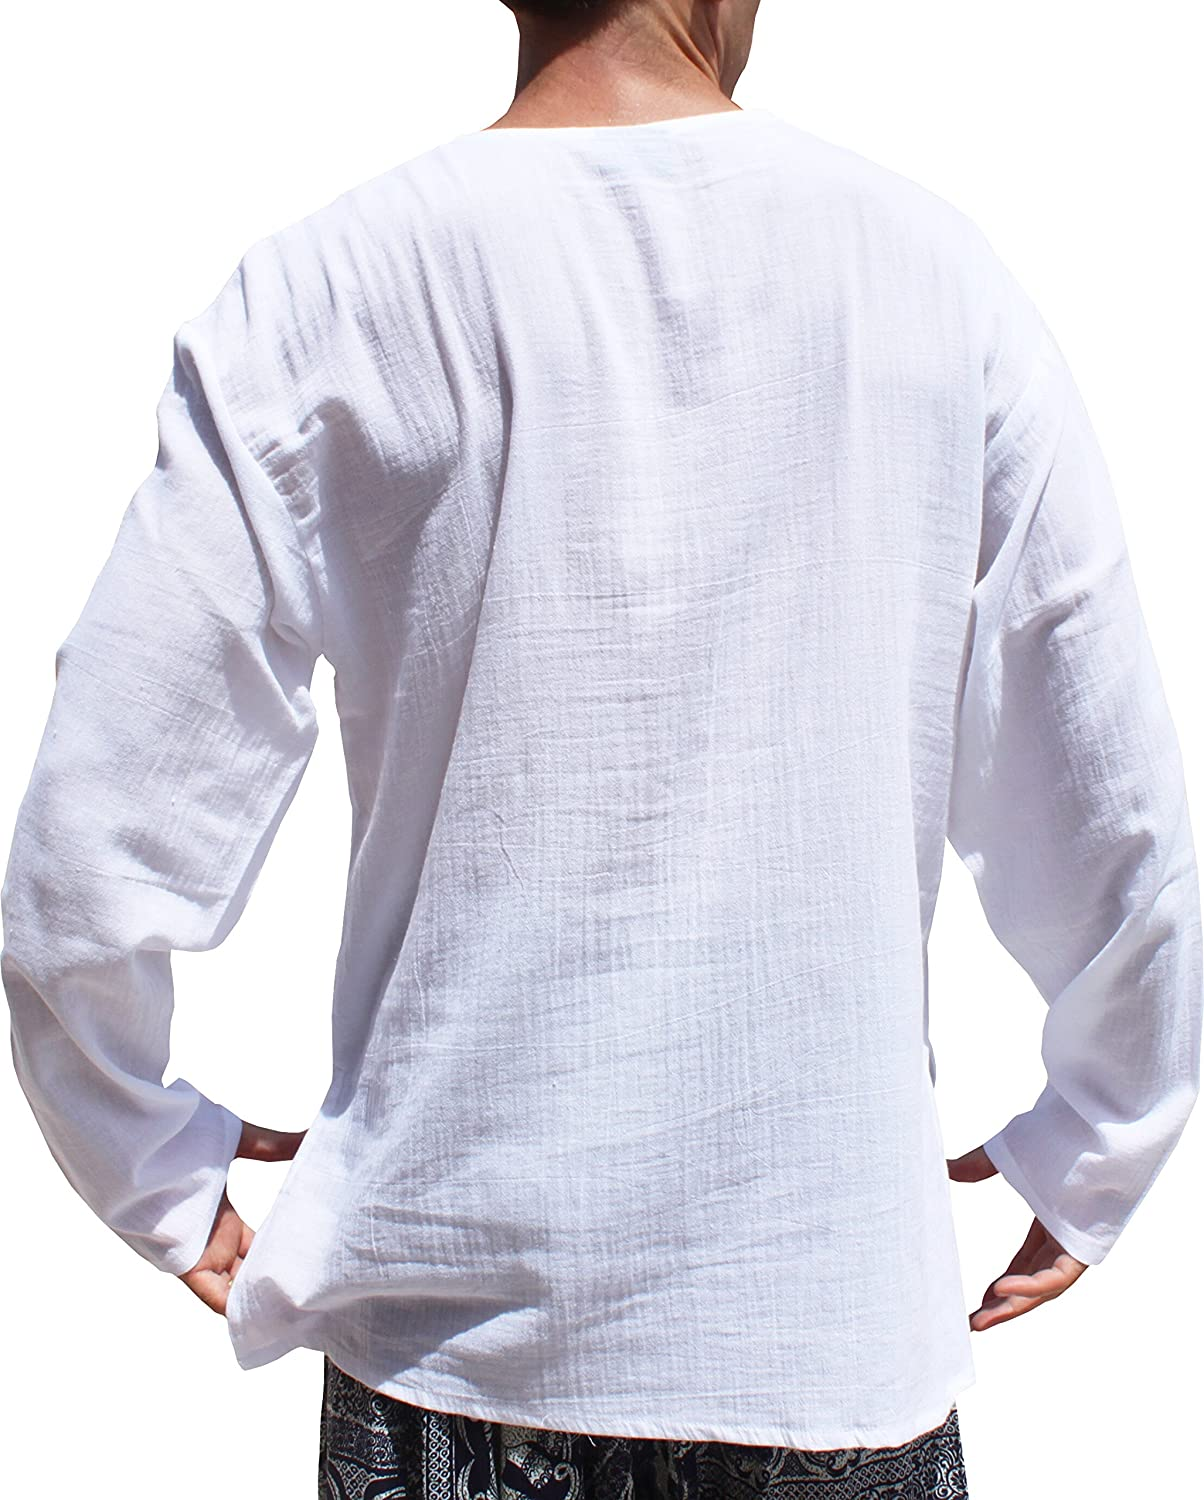 Raan Pah Muang RaanPahMuang Light Gauze Saloo Mens Summer Shirt Long Sleeve Small V Collar